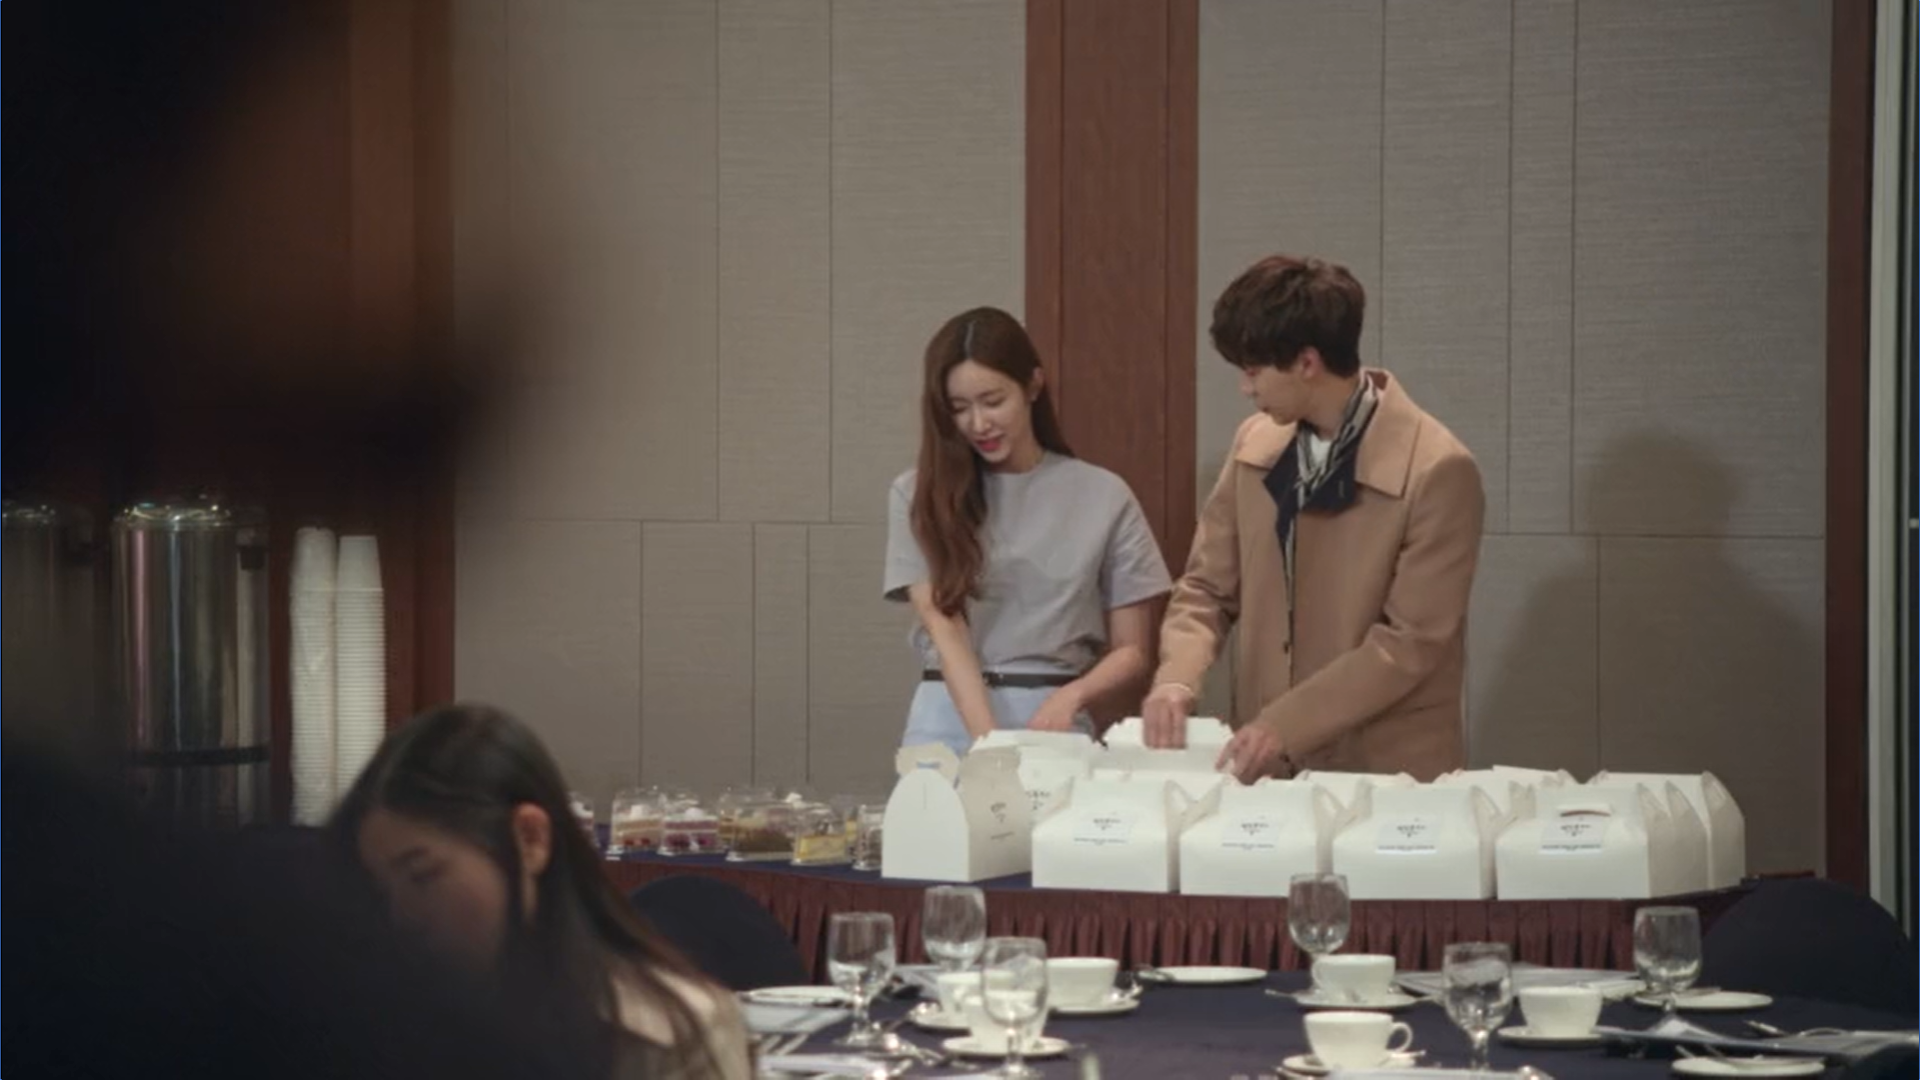 Wednesday 3:30 PM Yoon Jae-won and Gong Na-yeon catering